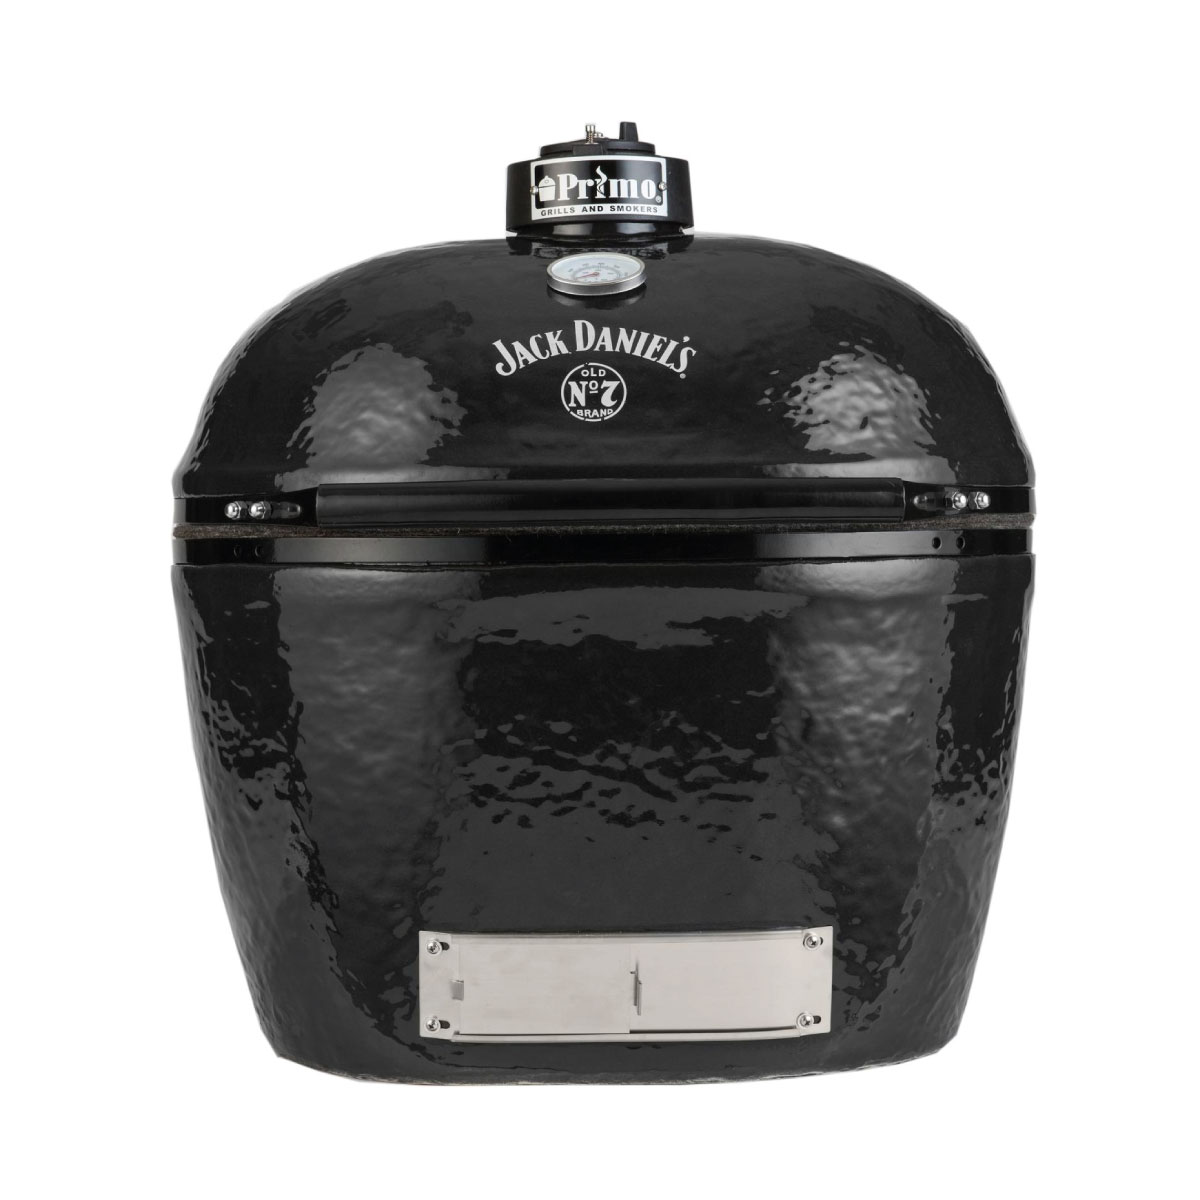 Primo Grill Oval XL Jack Daniels edition - Primo Grill